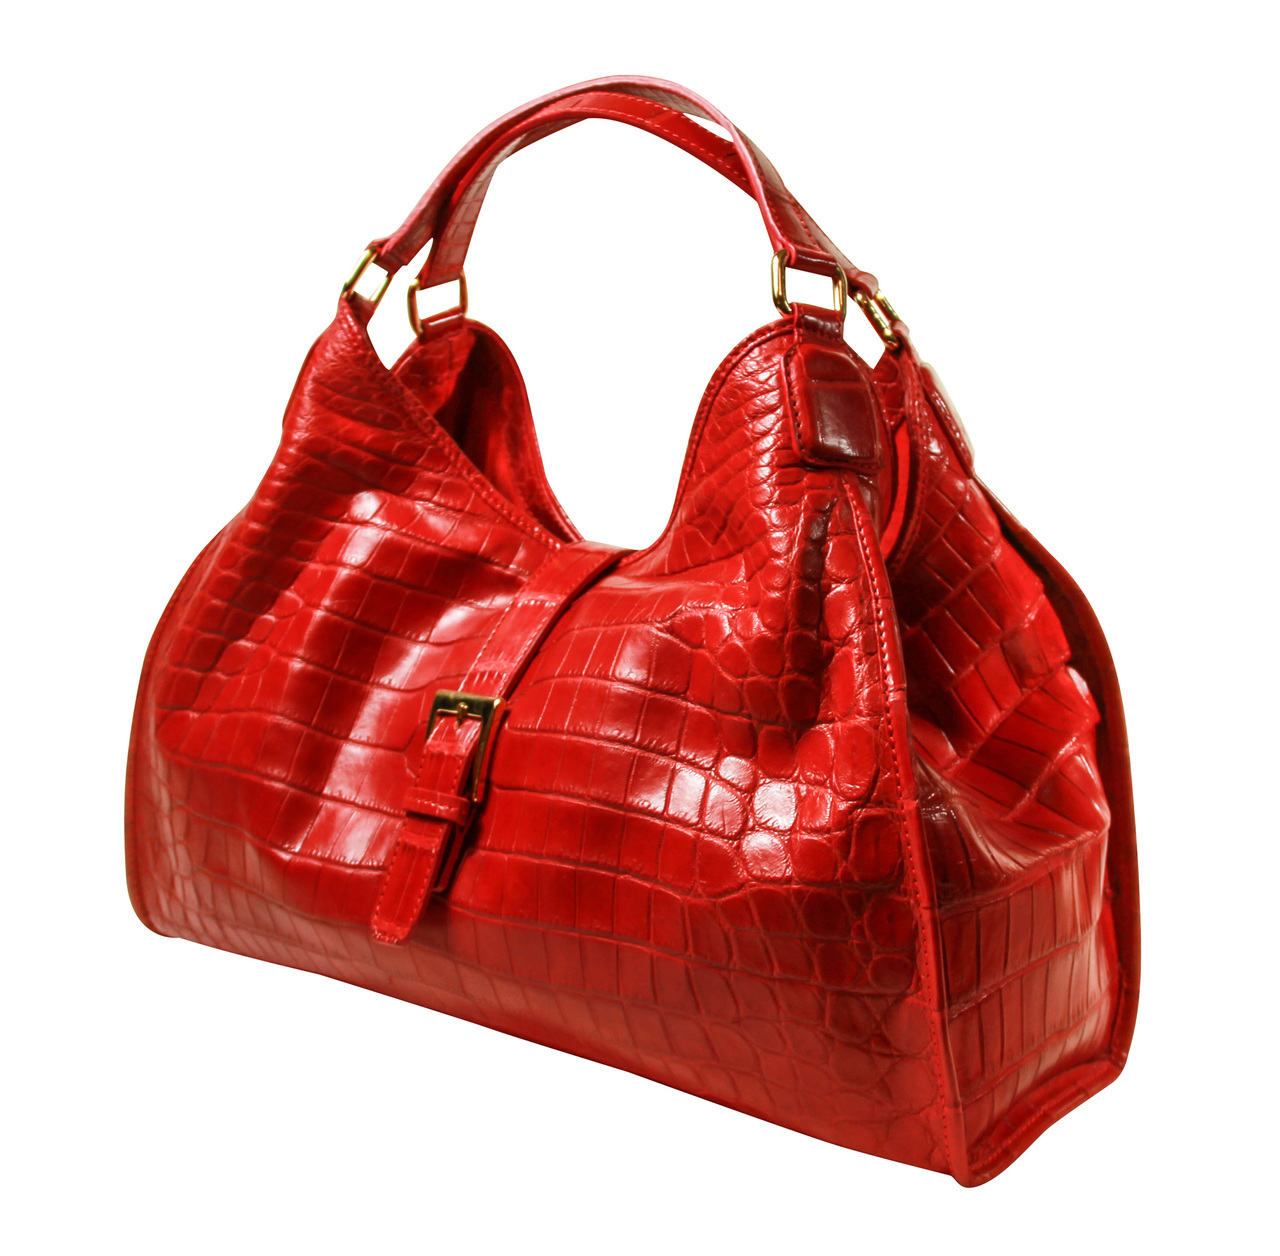 Colette 14' (Tucked Gussets) - Red Crocodile